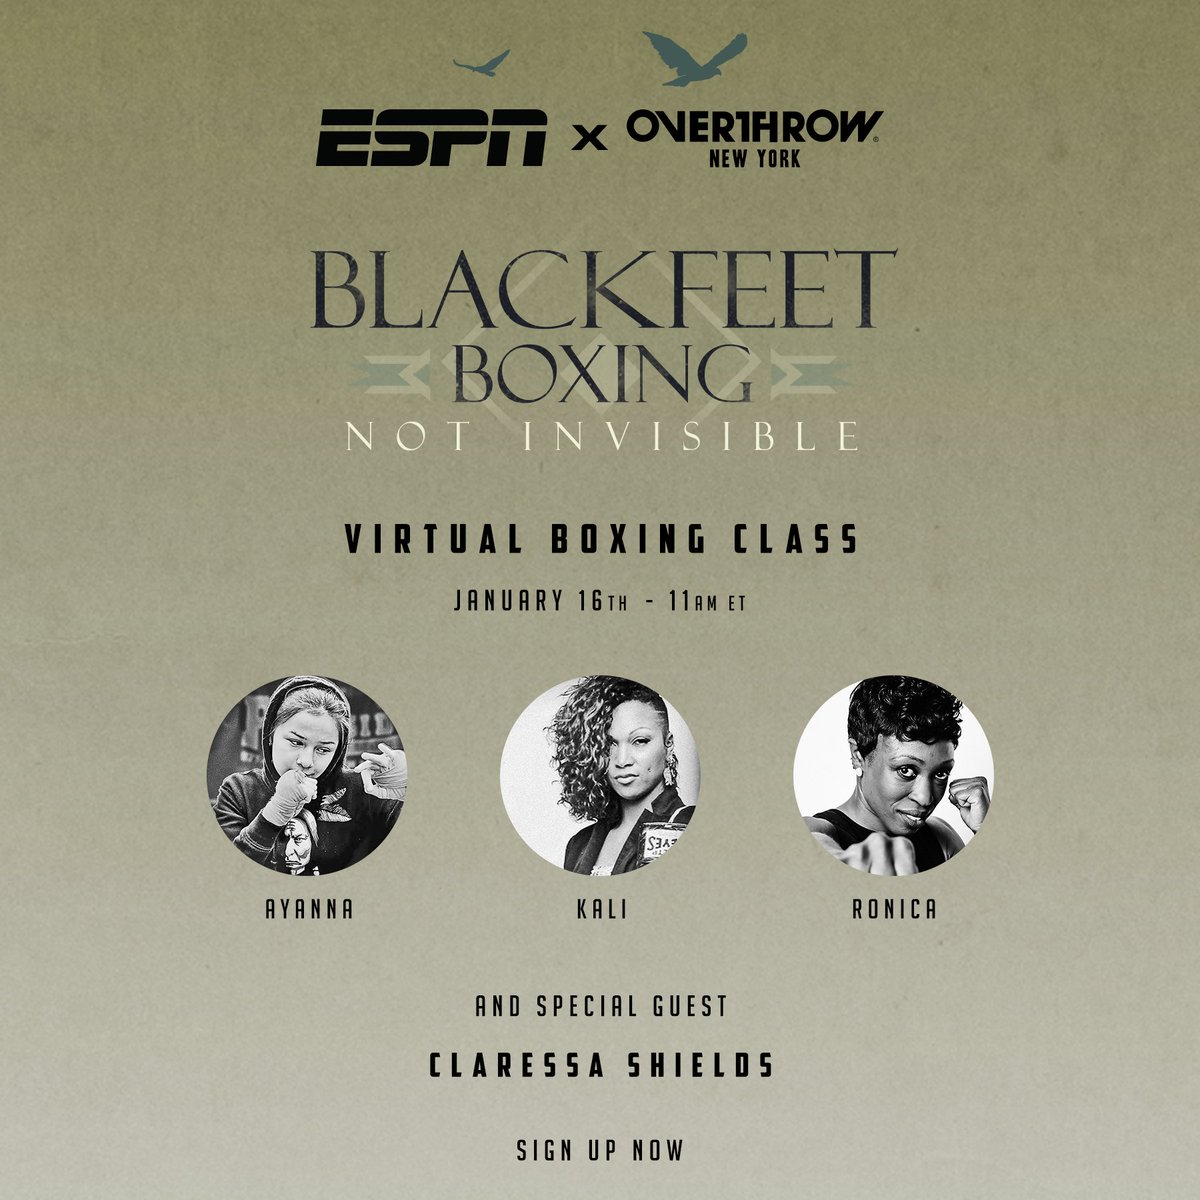 Join in with @ESPN and Overthrow New York 🥊  Sign up for a free virtual boxing class, inspired by the ESPN Film Blackfeet Boxing, to help raise awareness of the epidemic of #MMIW.   [ LINK: https://t.co/CHjM6YPf0o ] https://t.co/VZFJKPqZkF